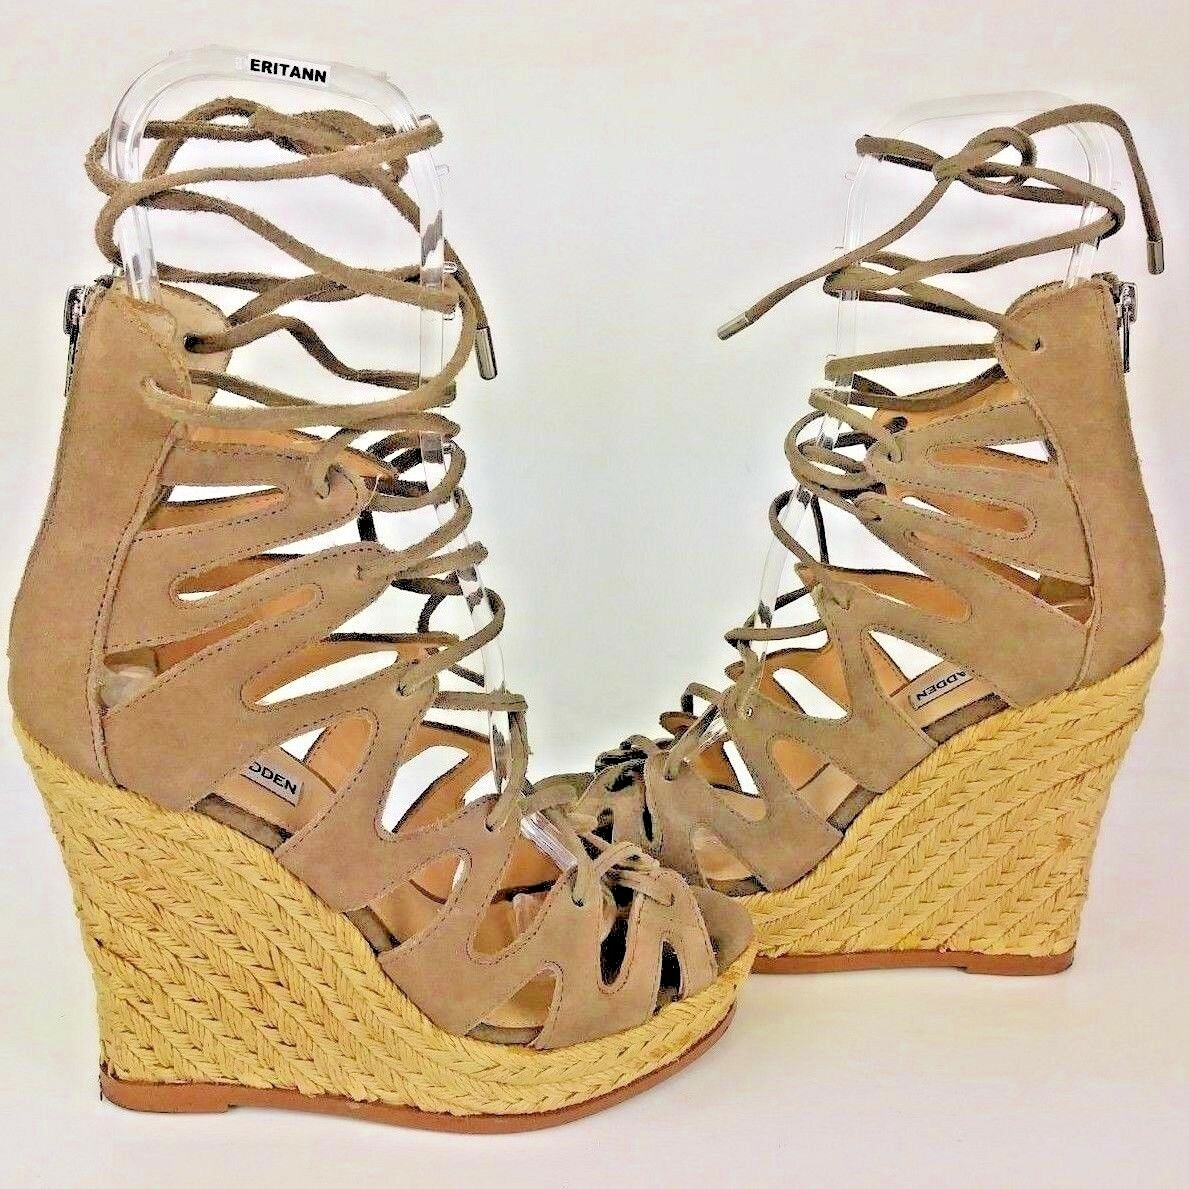 Steve Madden THEEA Wos Sandals Espadrilles US 7M Brown Suede Lace Platforms 1386